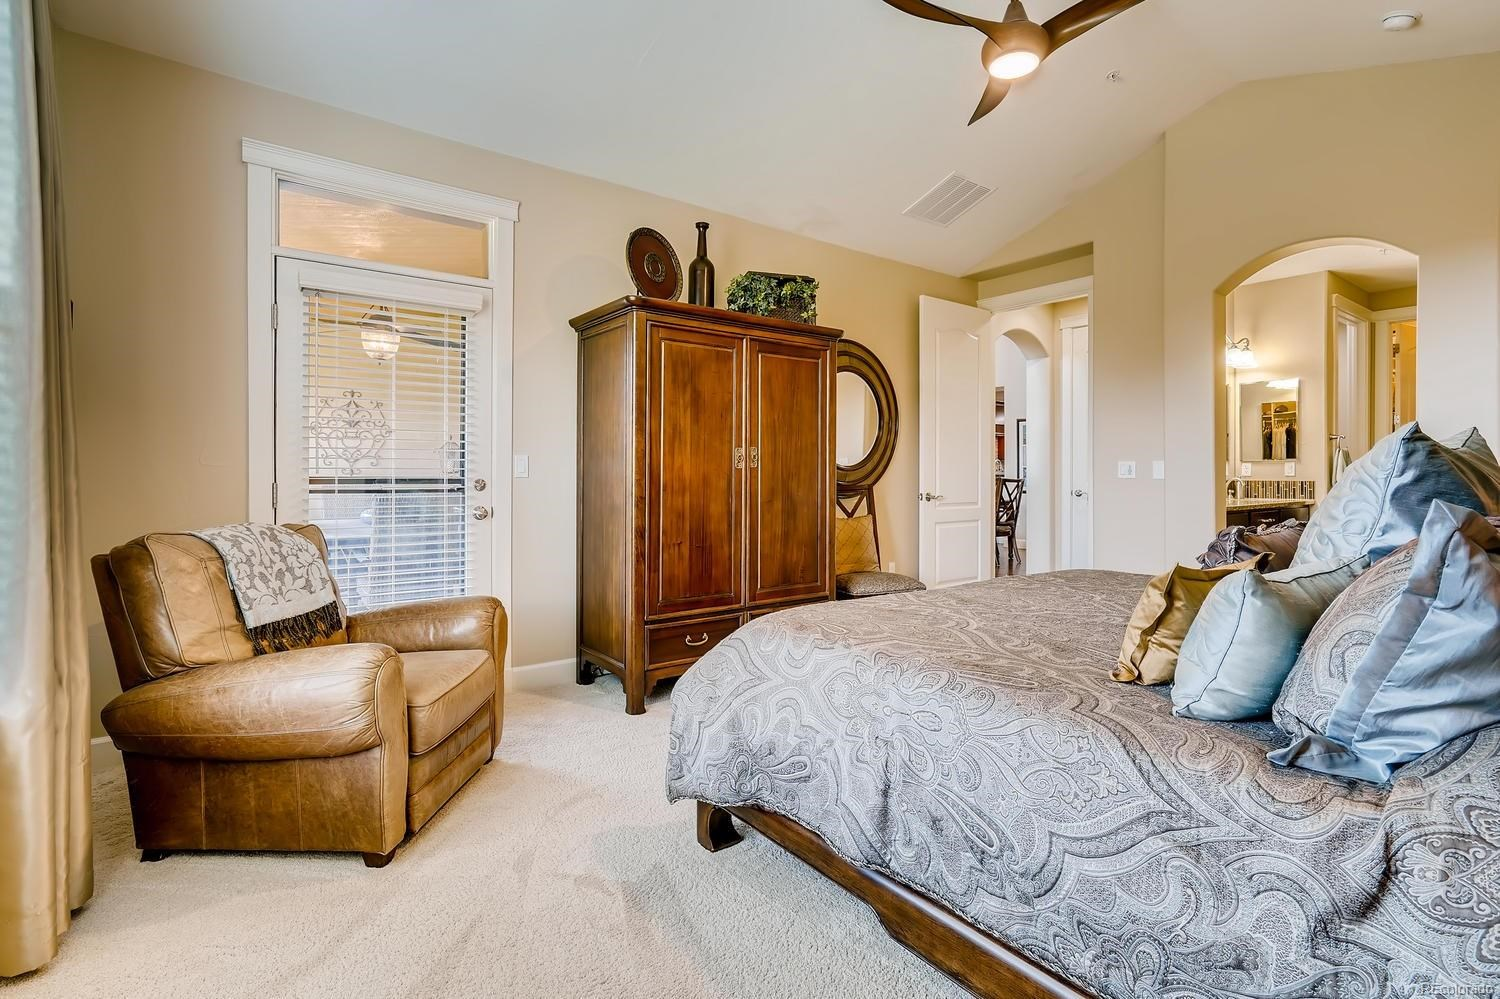 MLS# 2956952 - 17 - 2065 Primo Road #C, Highlands Ranch, CO 80129